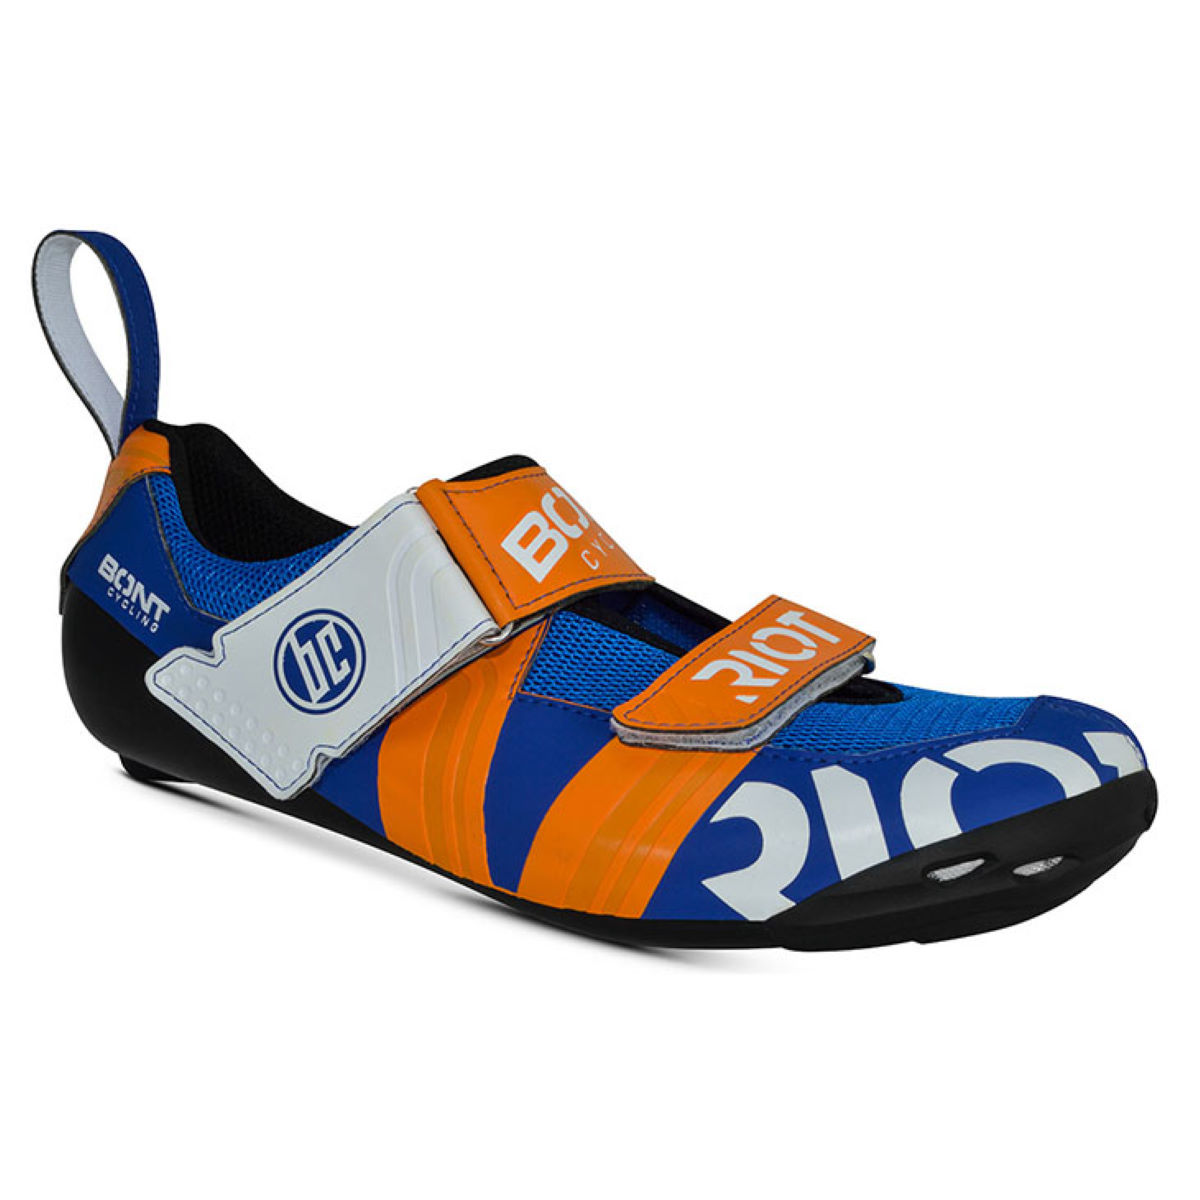 Chaussures de triathlon Bont Riot TR+ - EU 48 Midnight/Mega Crimso